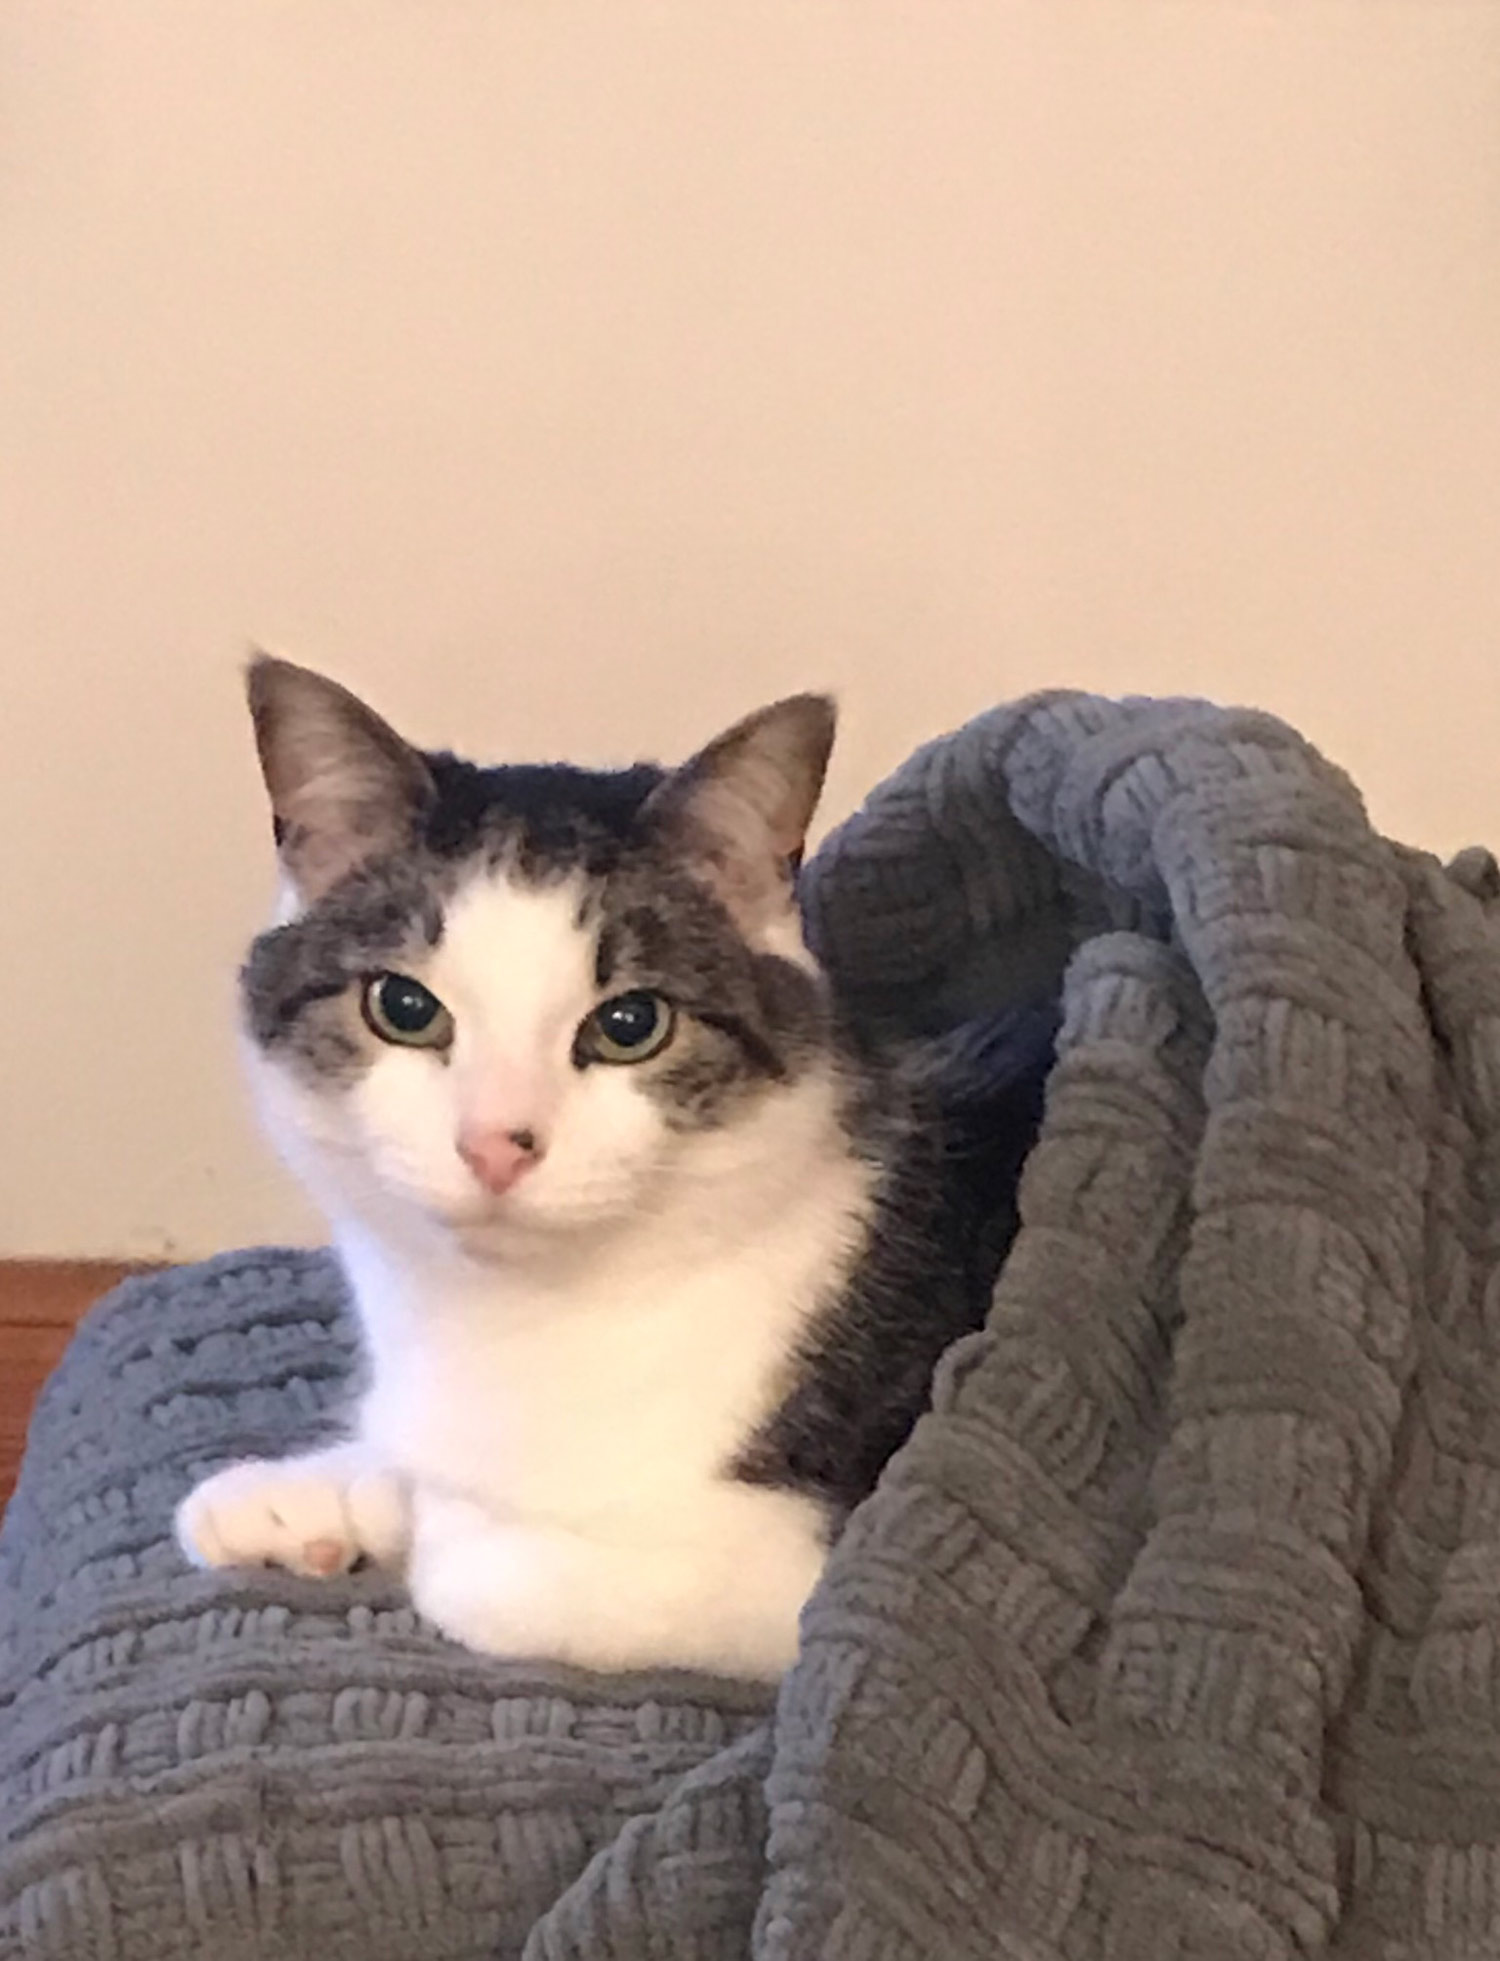 Fran B. in Manchester, NH sent a picture of Noah, her seven-year-old grey and white cat. Fran says he loves to snuggle and is shown snuggled into one of those new pita pocket style beds.